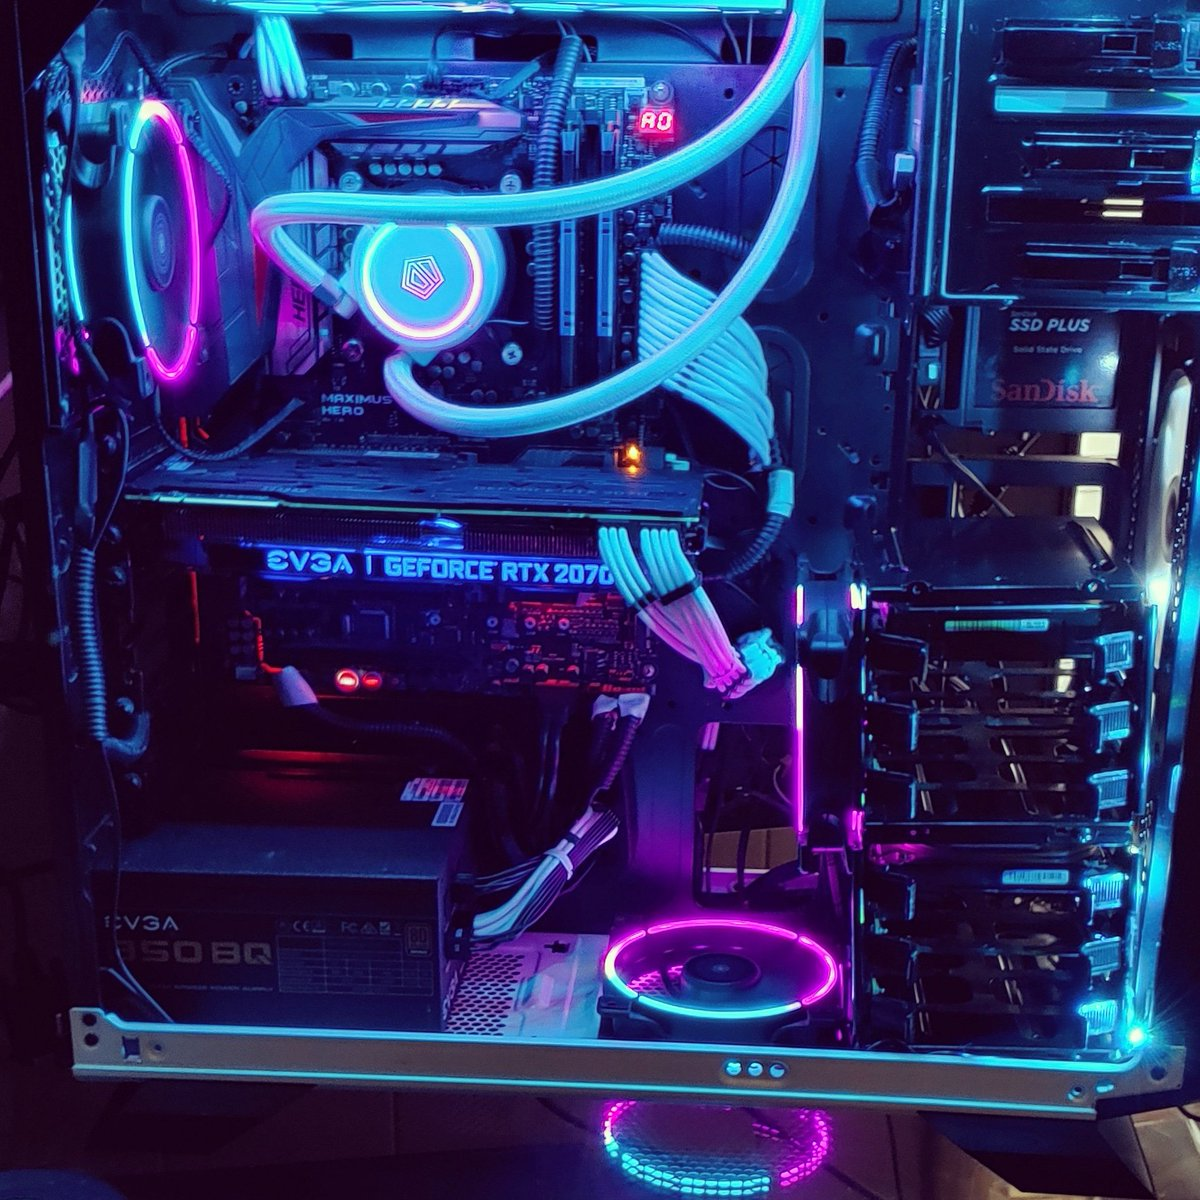 #pcgaming  #pcmasterrace  #pc the newest edition of upgrades for the rebuild.  #PCGamer  #cleansetup pic.twitter.com/kwf1QNU0JT